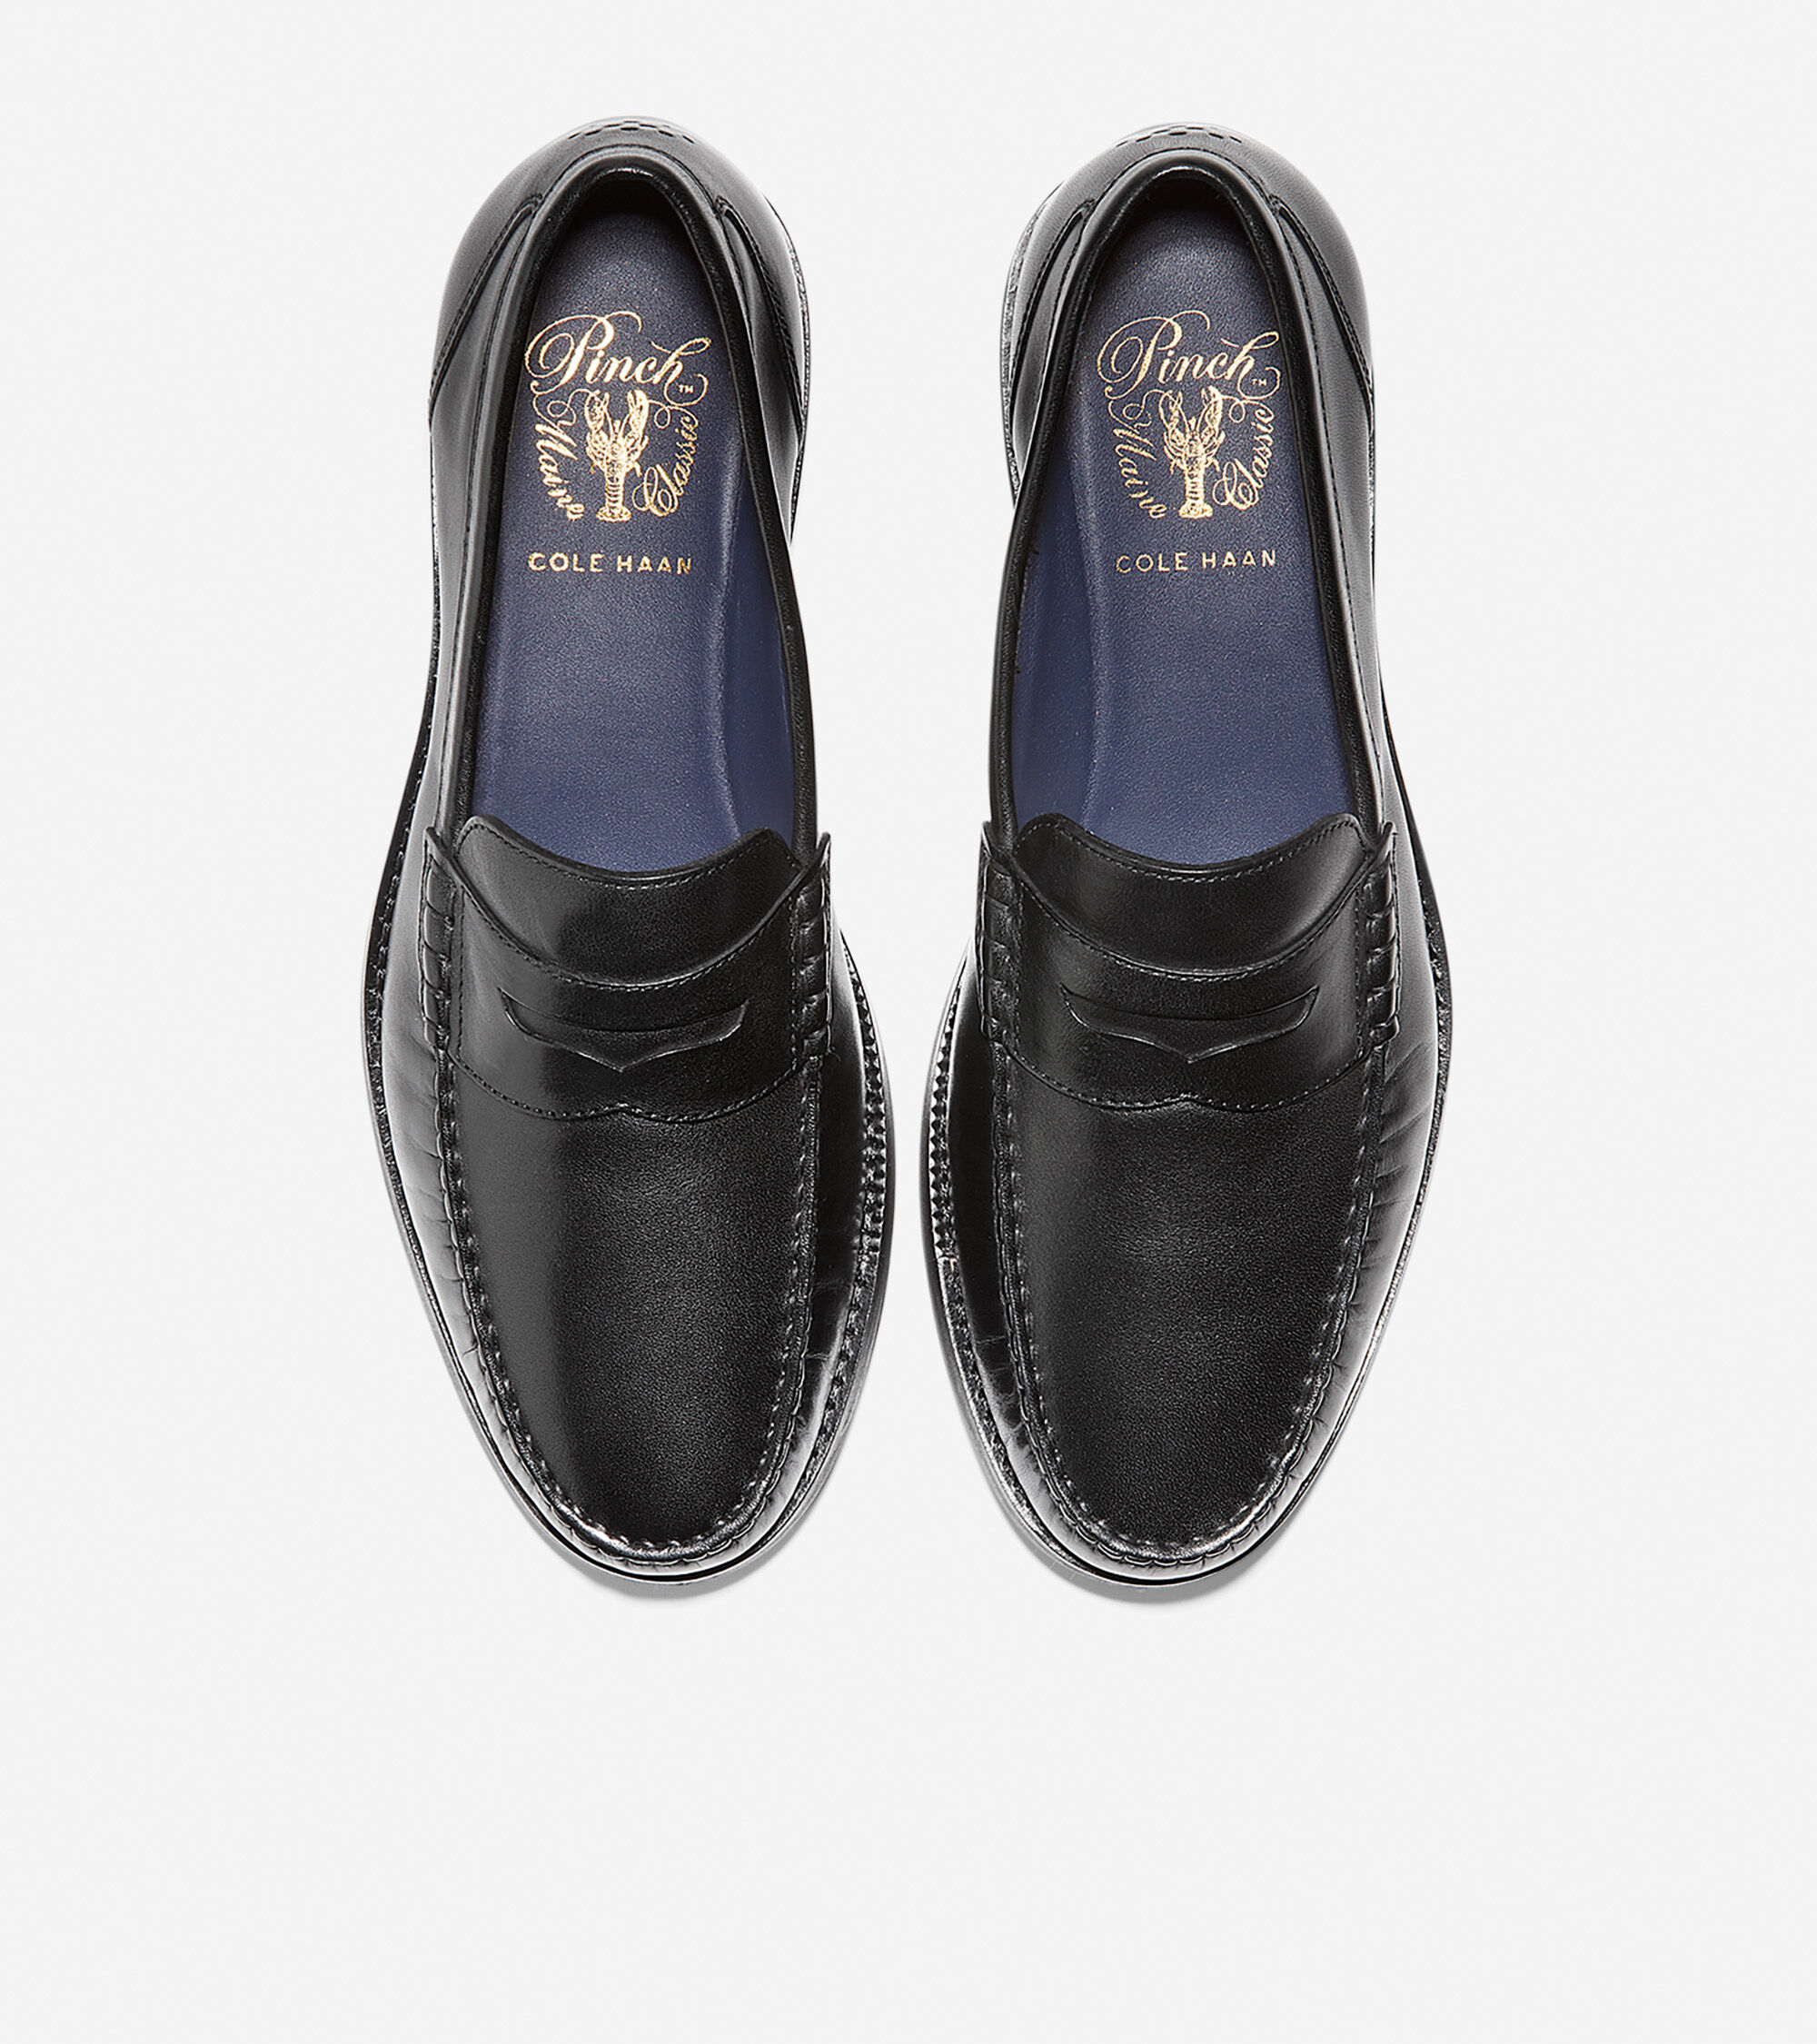 087bfc812a3 Men s Pinch Grand Classic Penny Loafers in Black